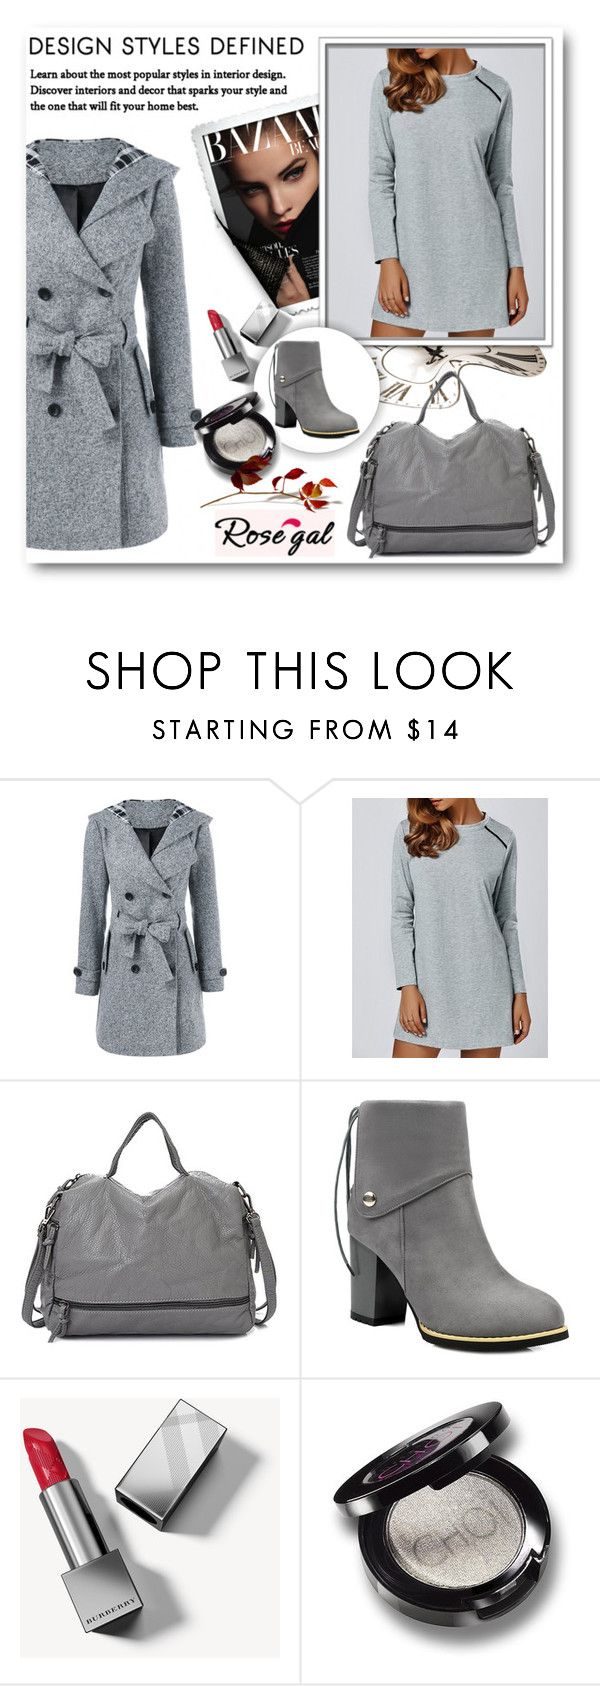 """55) ROSEGAL"" by mirecr7 ❤ liked on Polyvore featuring Burberry"